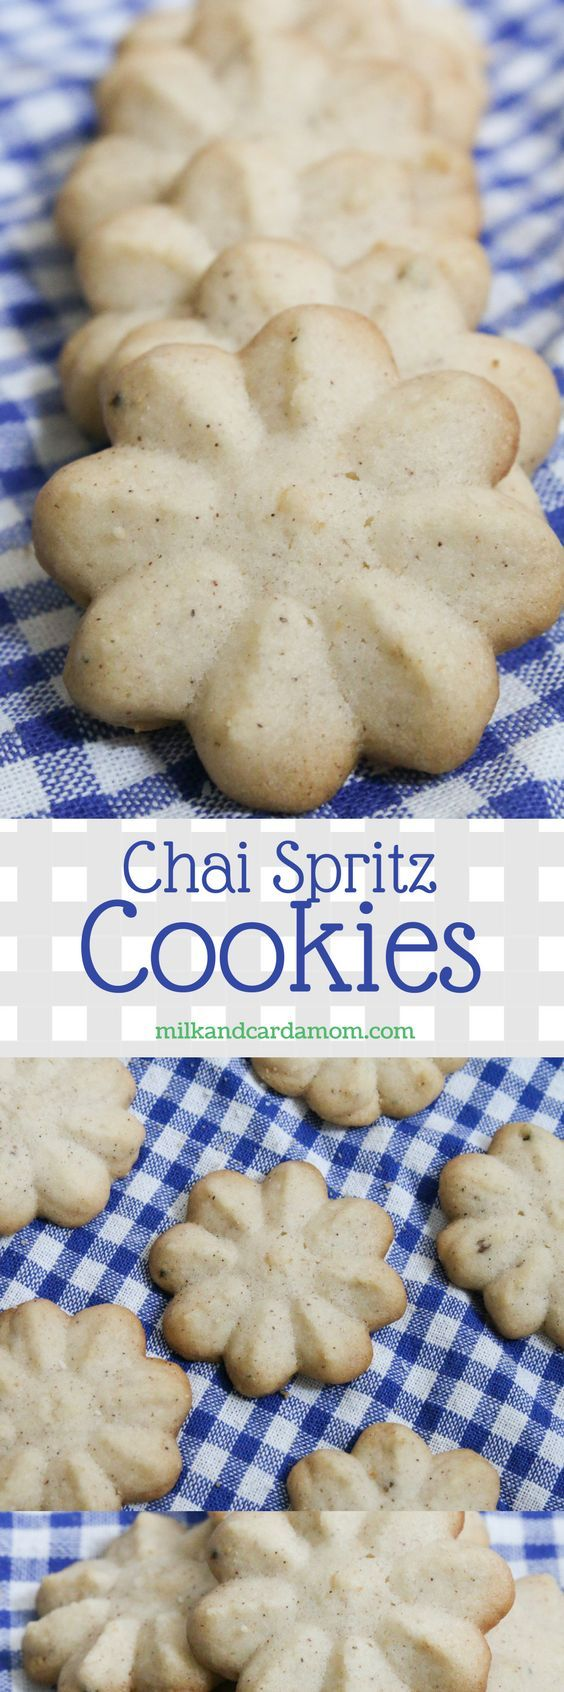 Need to make a big batch of cookies for the holidays? Try this chai spiced spritz cookie recipe!